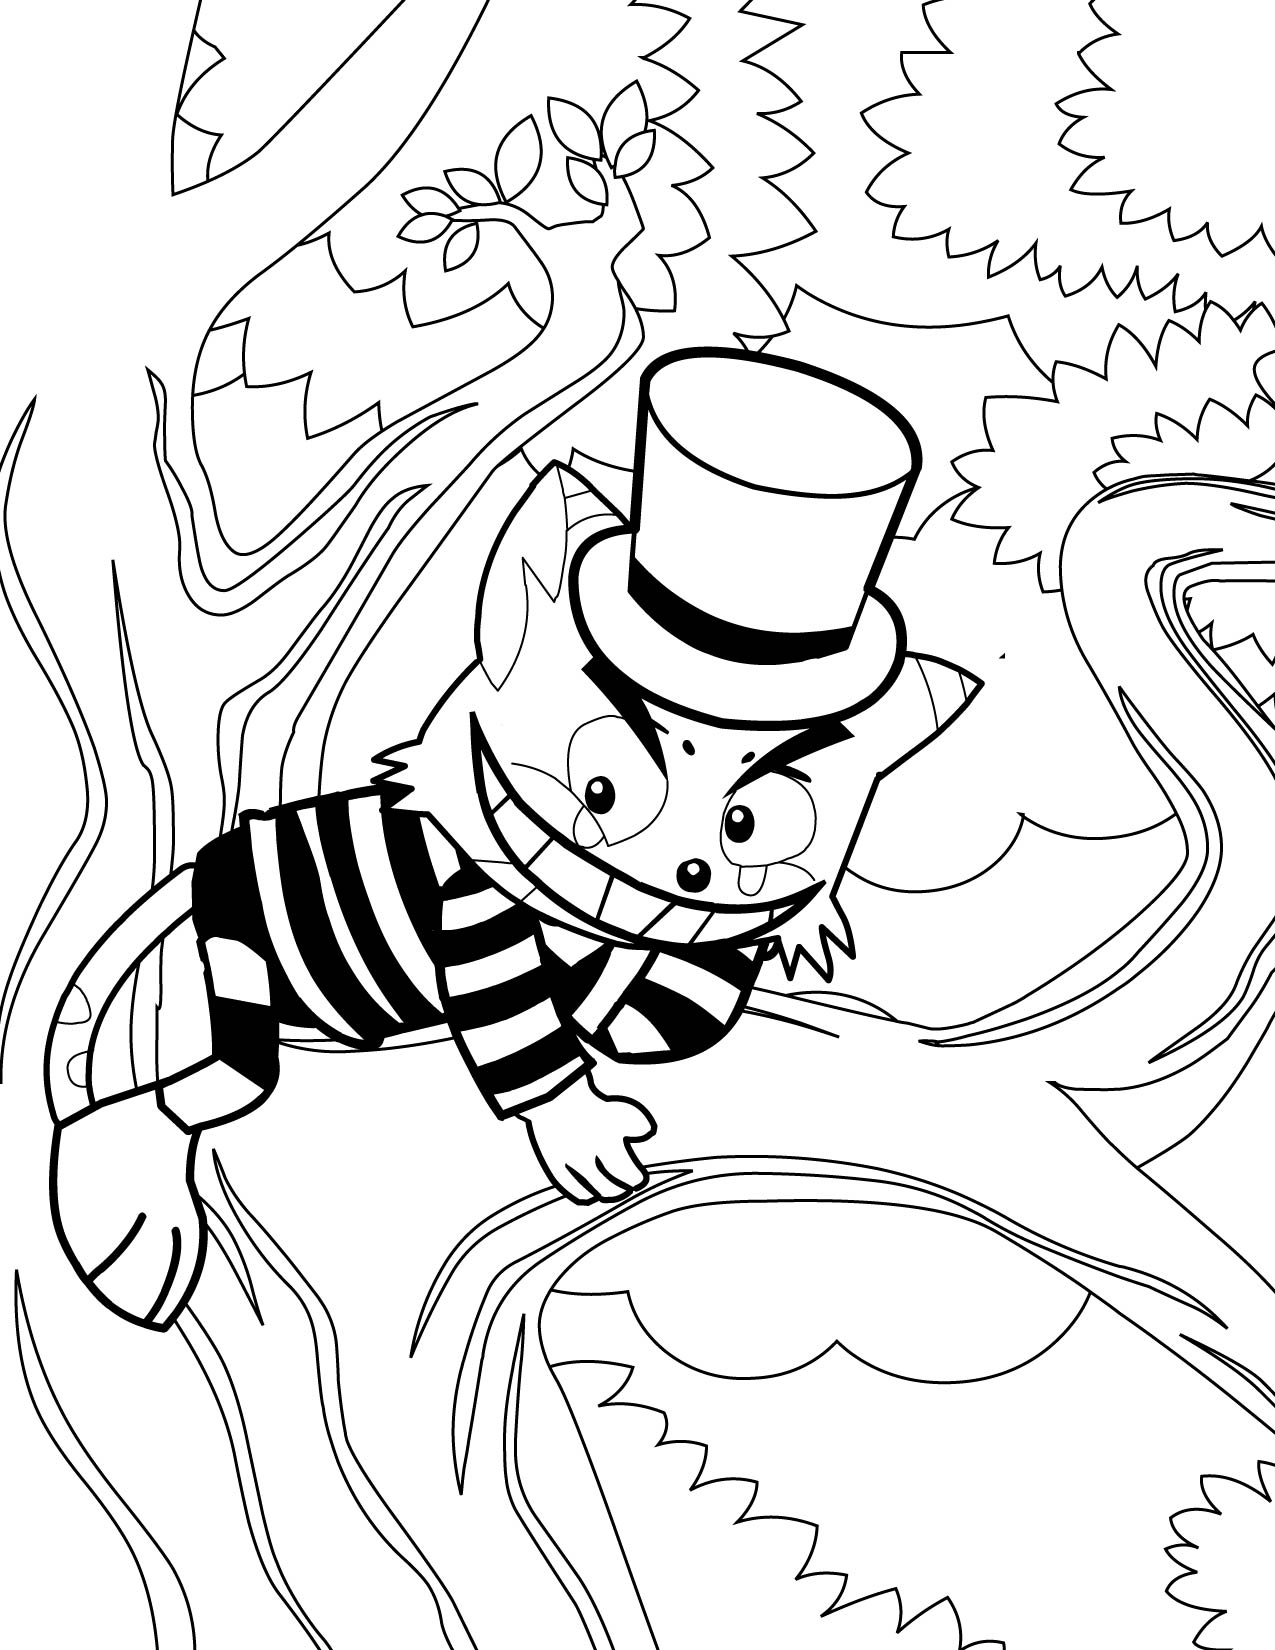 Alice In Wonderland Cat Coloring Pages at GetDrawings.com ...